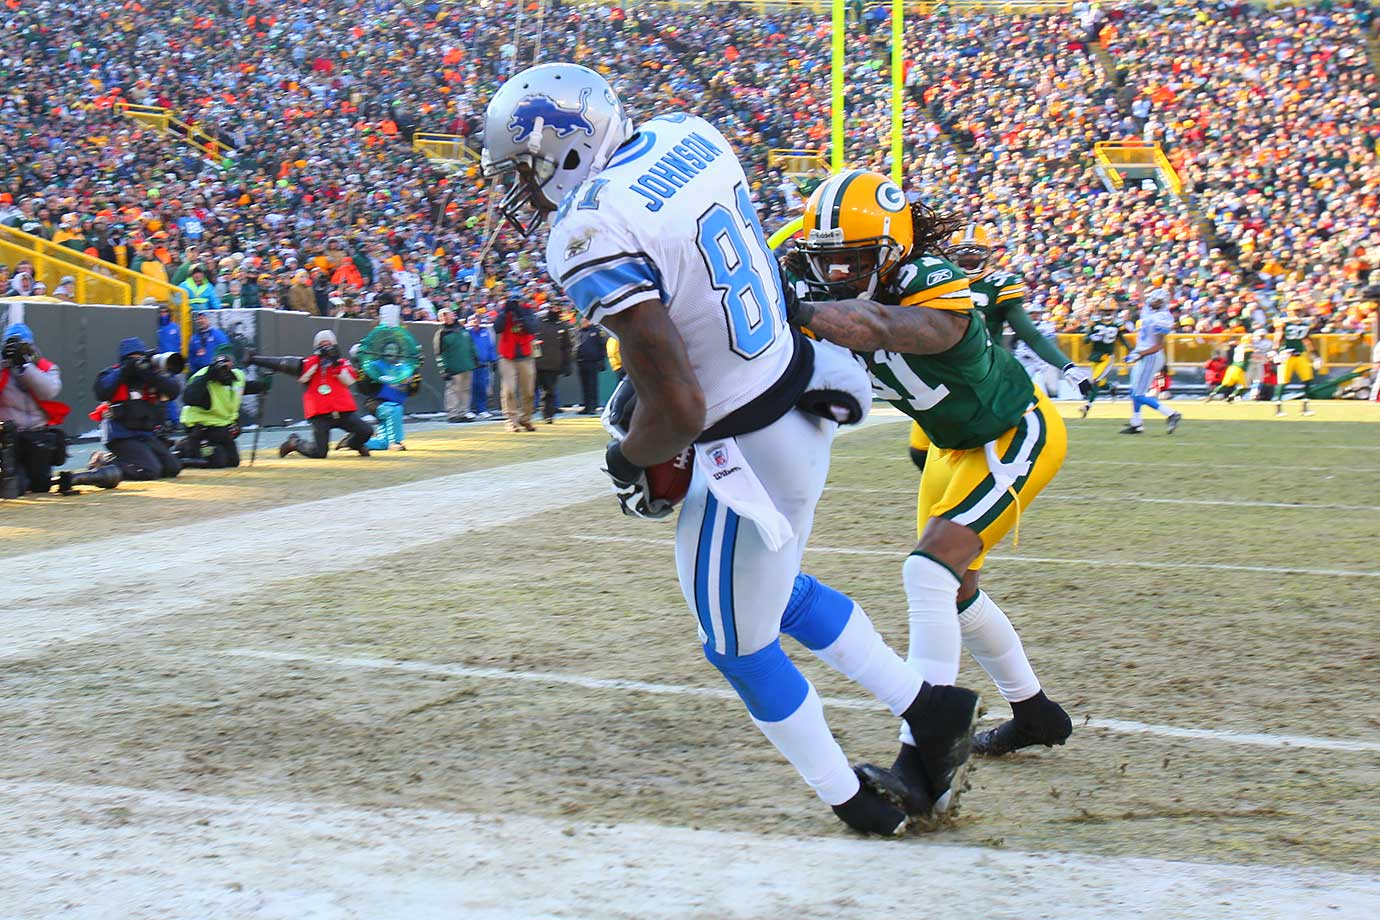 Dec. 28, 2008 — Detroit Lions vs. Green Bay Packers